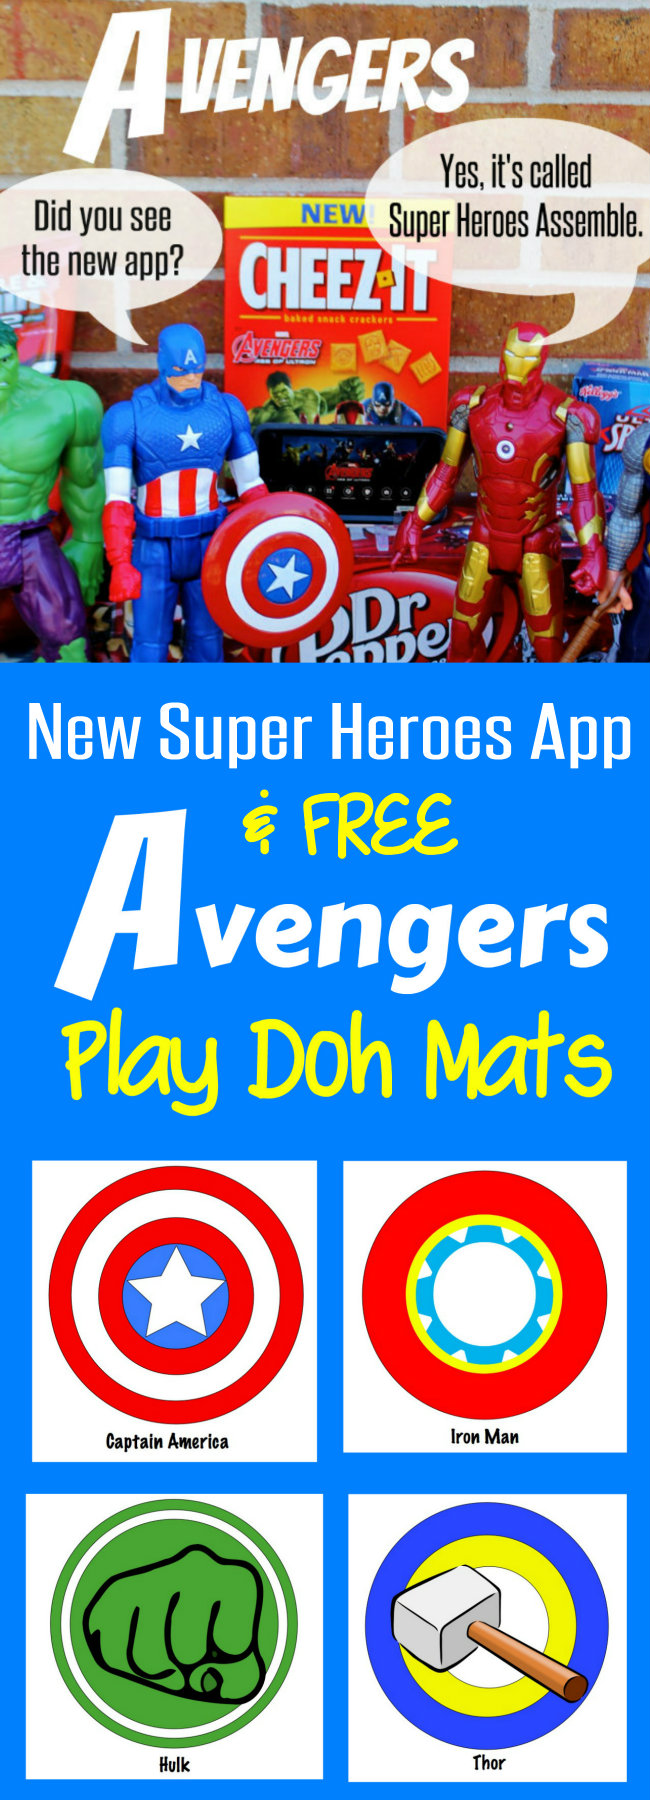 New Super Heroes Assemble App and FREE Avengers Play Doh Mats from HappyandBlessedHome.com plus enter to WIN $4,500 in Prizes